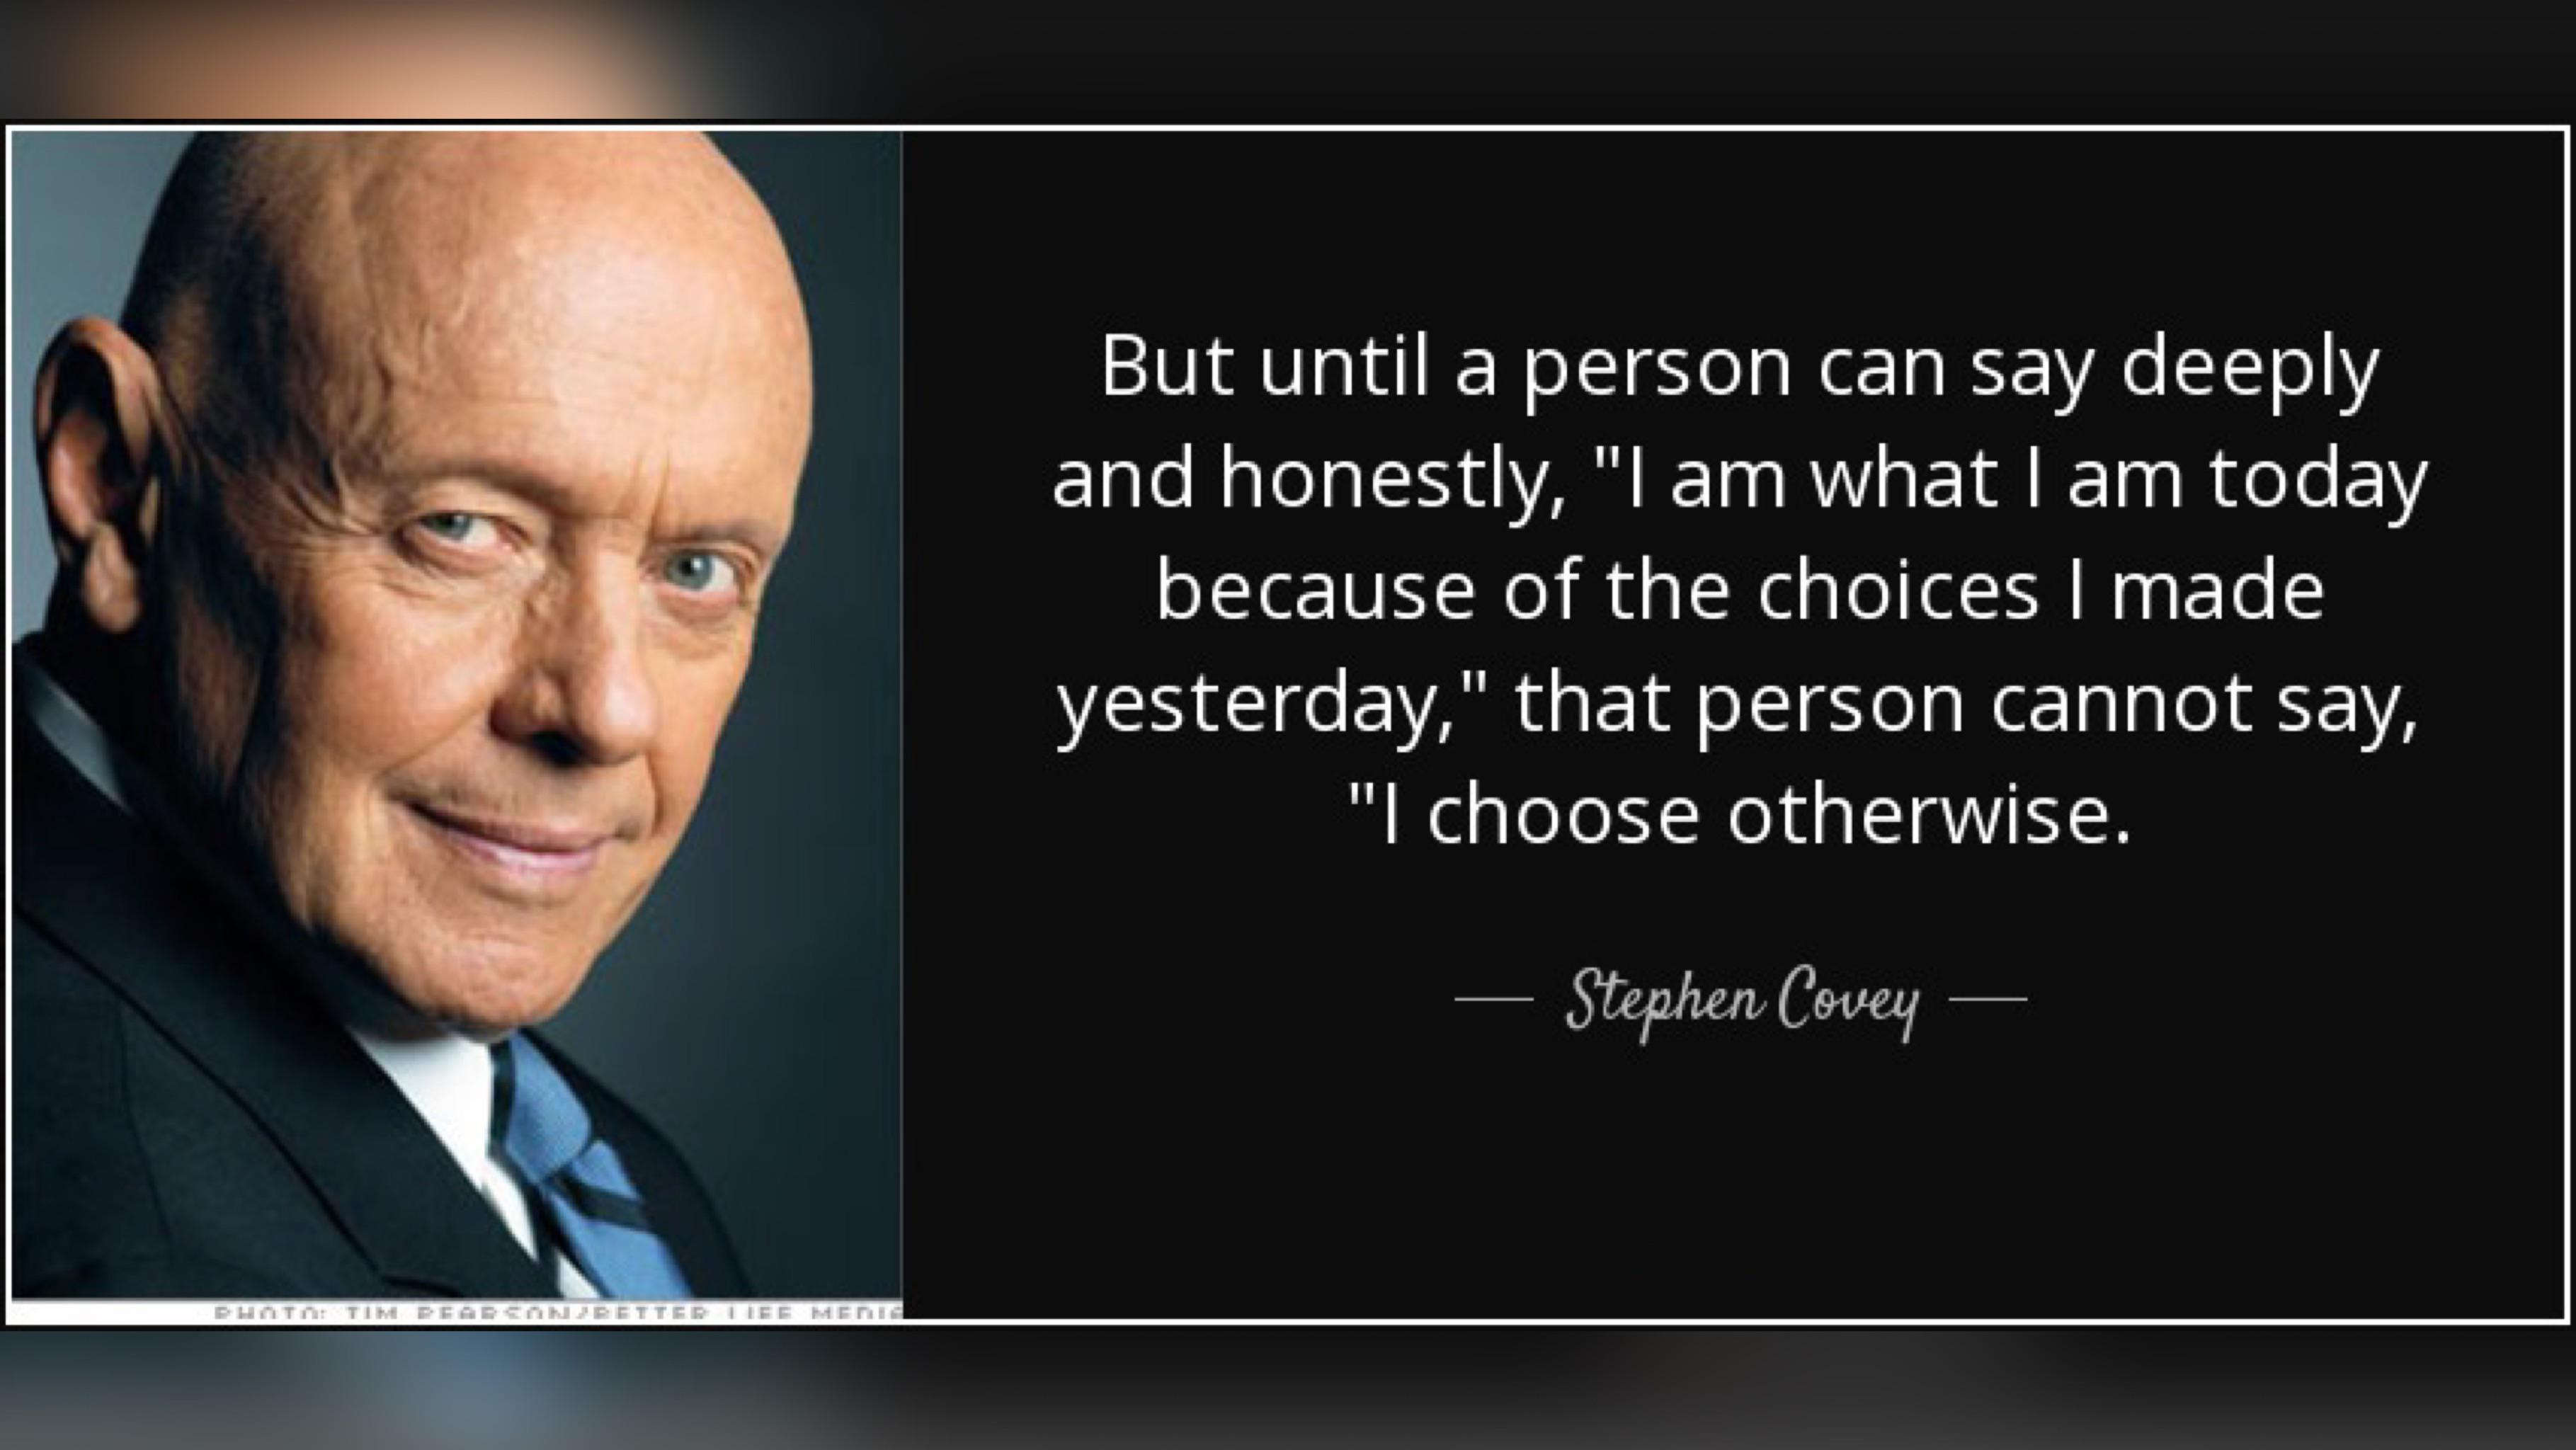 """But until a person can say deeply and honestly, """"I am what I am today because of the choices I made yesterday,"""" that person cannot say, """"I choose otherwise. _WCW€'I_ u ' V 2  ' ,3 a w . https://inspirational.ly"""